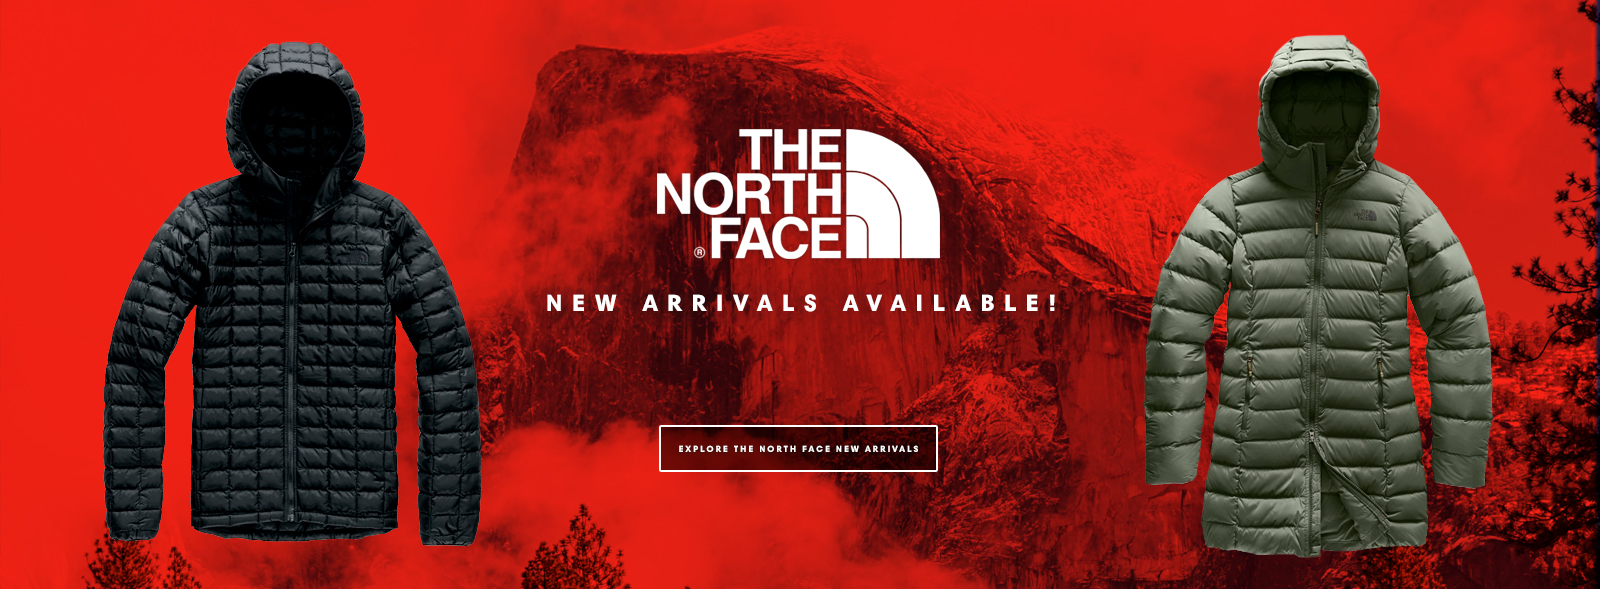 The North Face New Arrivals